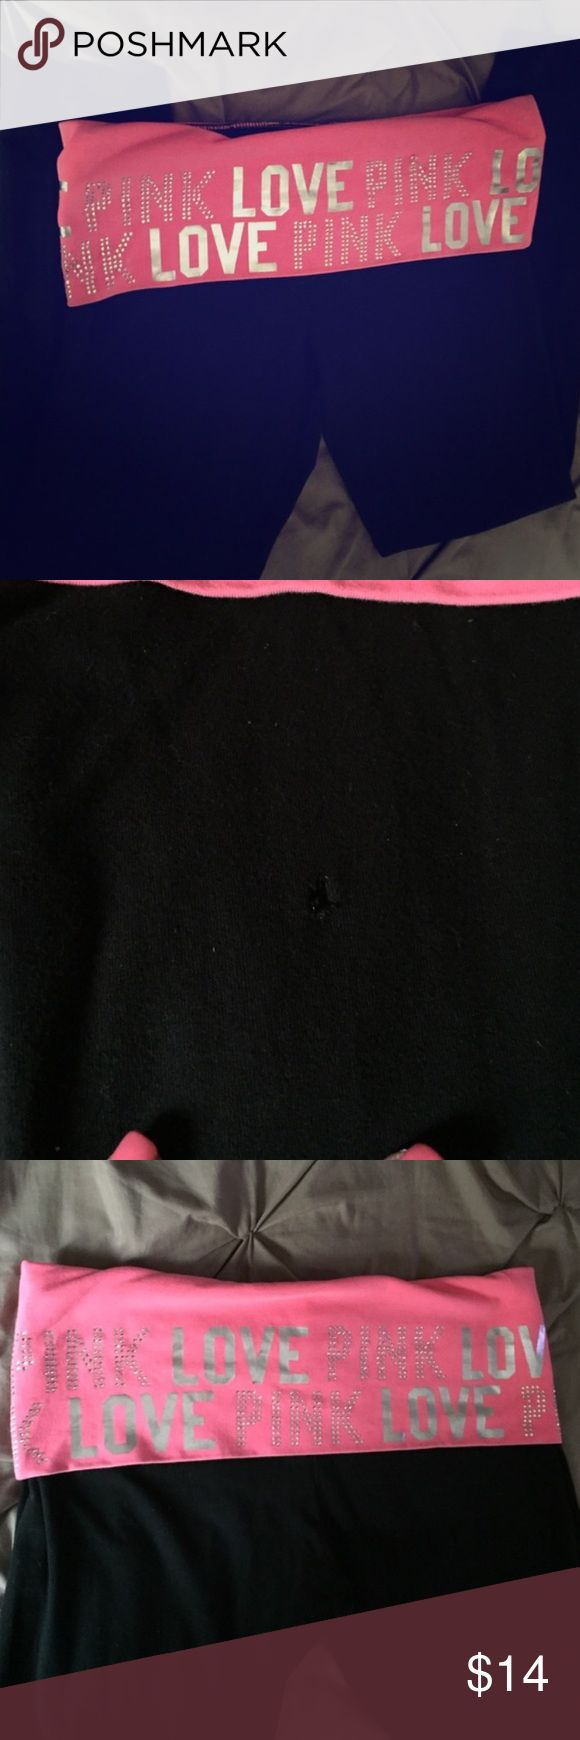 """Rare """"LOVE PINK"""" leggings Gorgeous pair of leggings, not sold in stores anymore, bright pink with silver """"love pink"""" written all over the top of the leggings, they are a size large, as seen in the photo there is a very small hole located on the back (I'm sure it can be sewed) PINK Victoria's Secret Pants Leggings"""